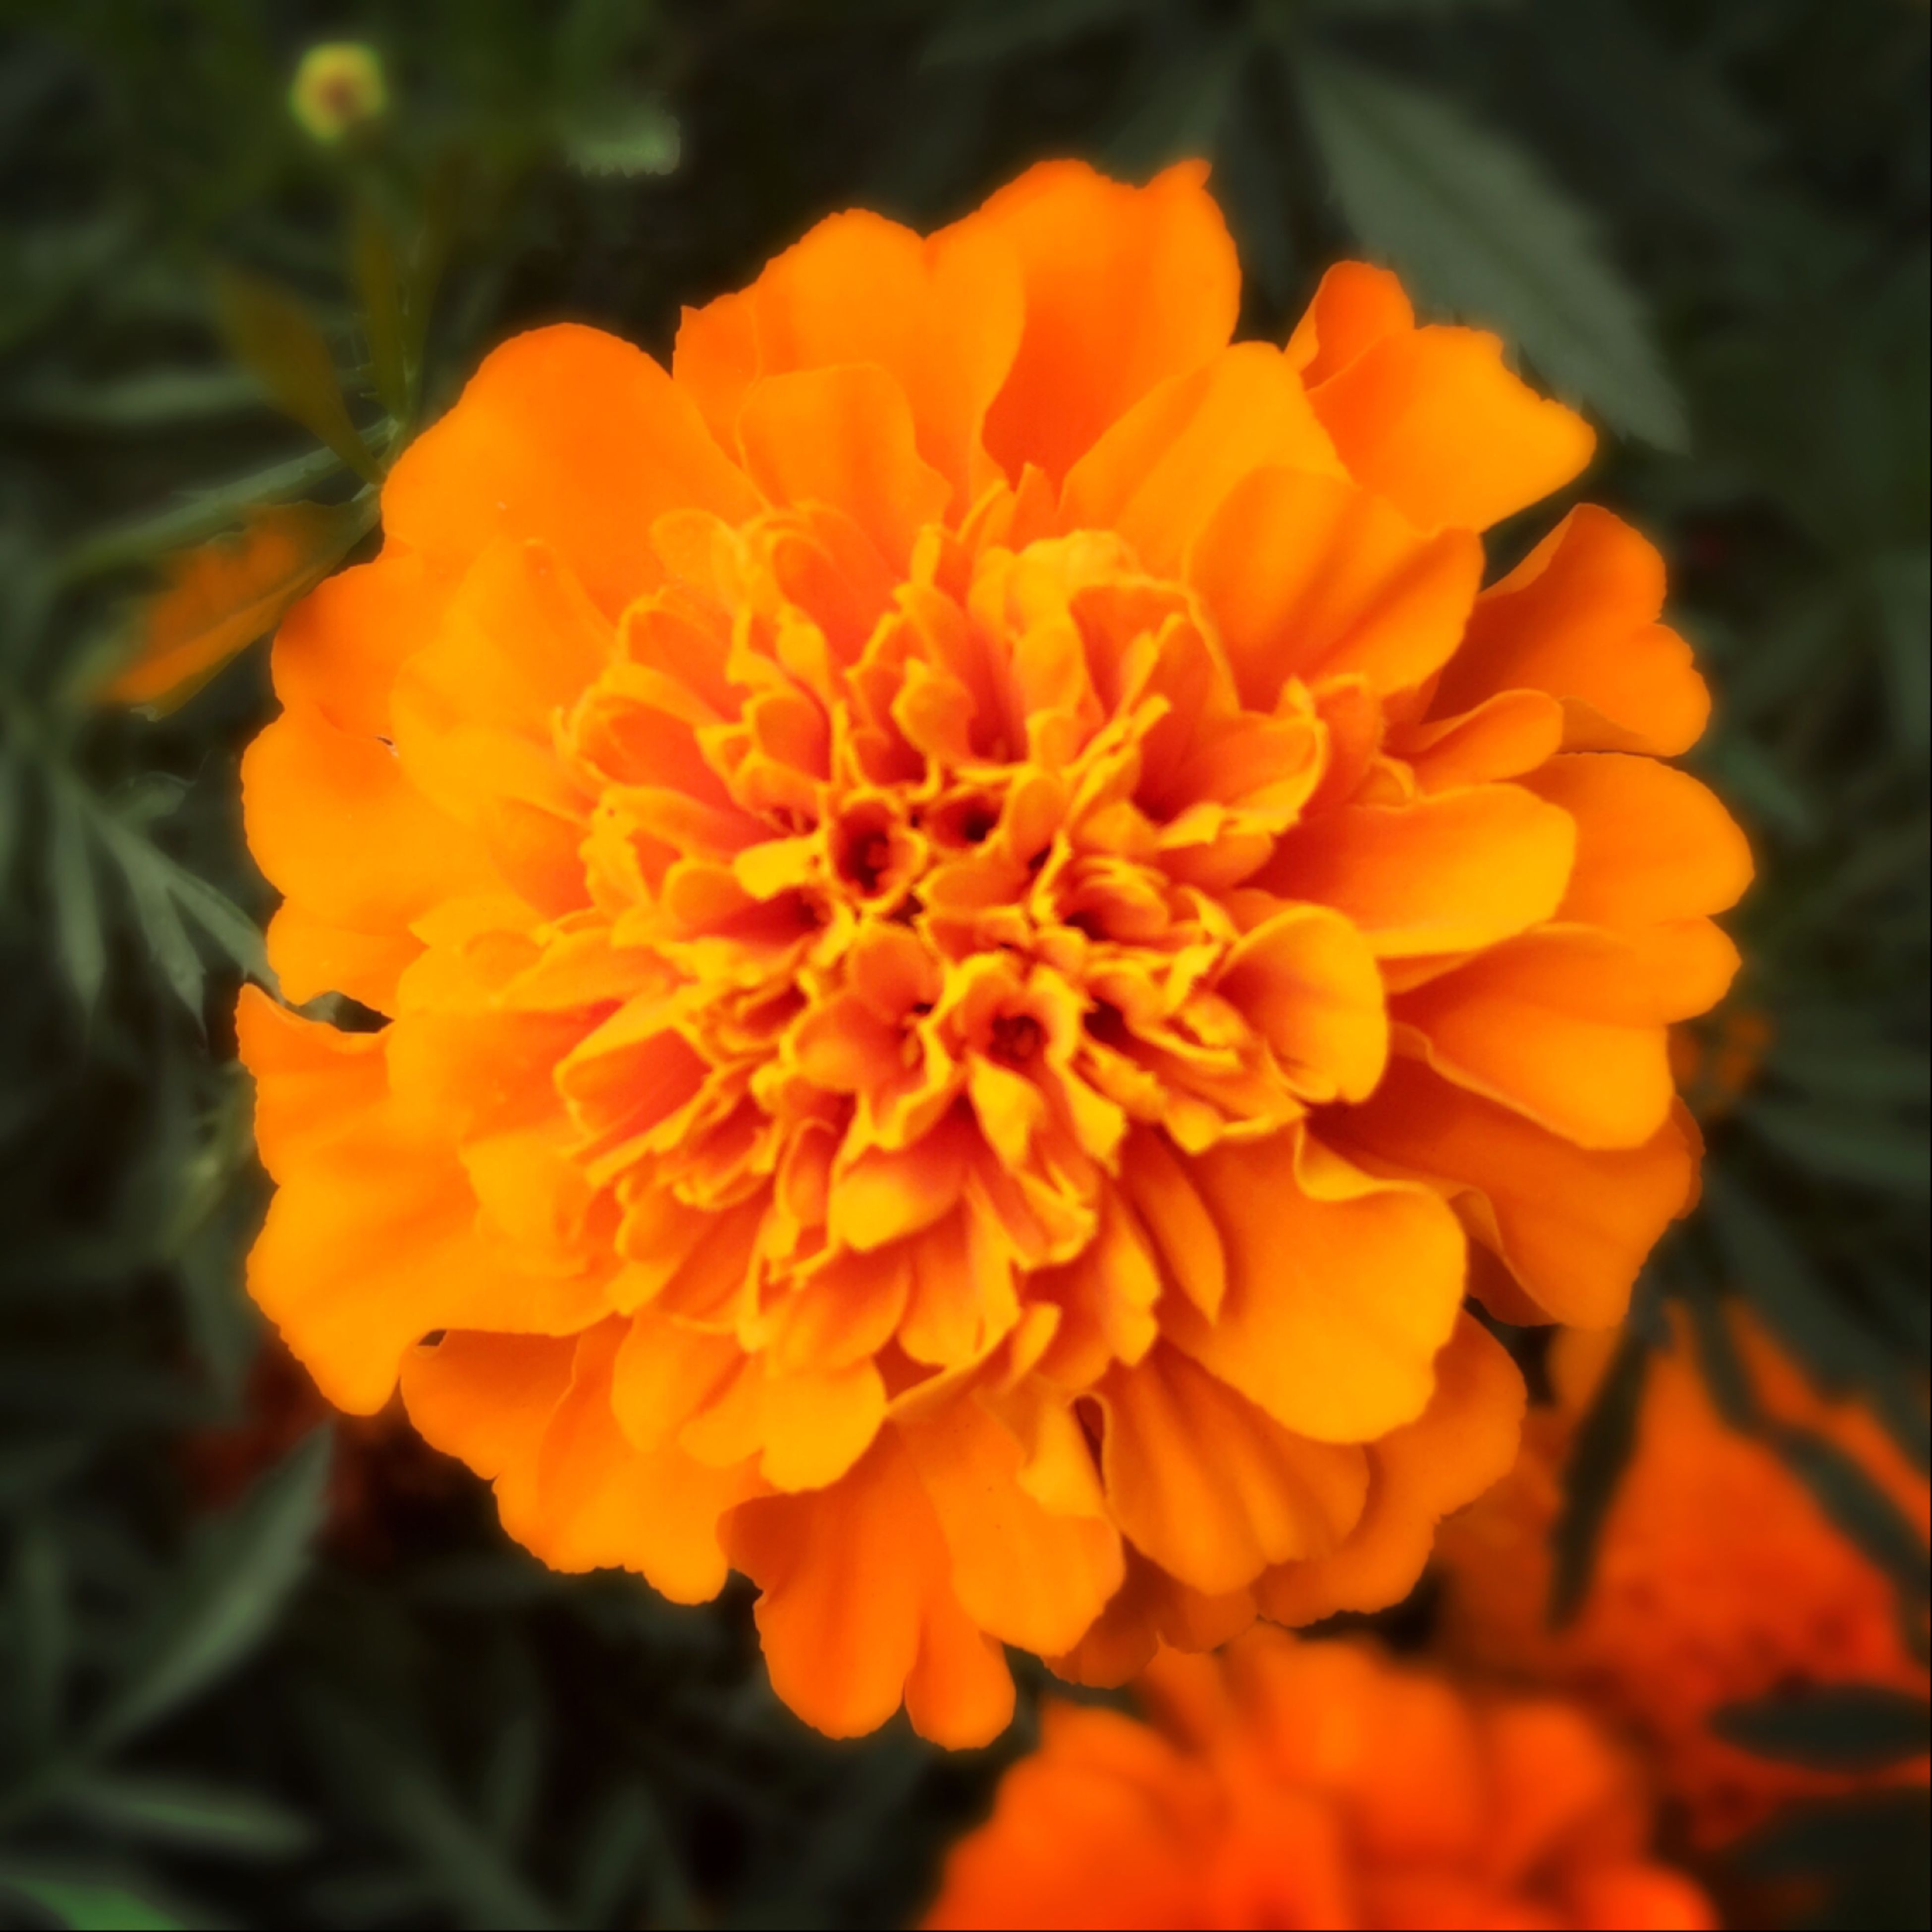 flower, petal, freshness, flower head, fragility, growth, beauty in nature, close-up, blooming, nature, yellow, orange color, focus on foreground, plant, in bloom, high angle view, single flower, blossom, outdoors, no people